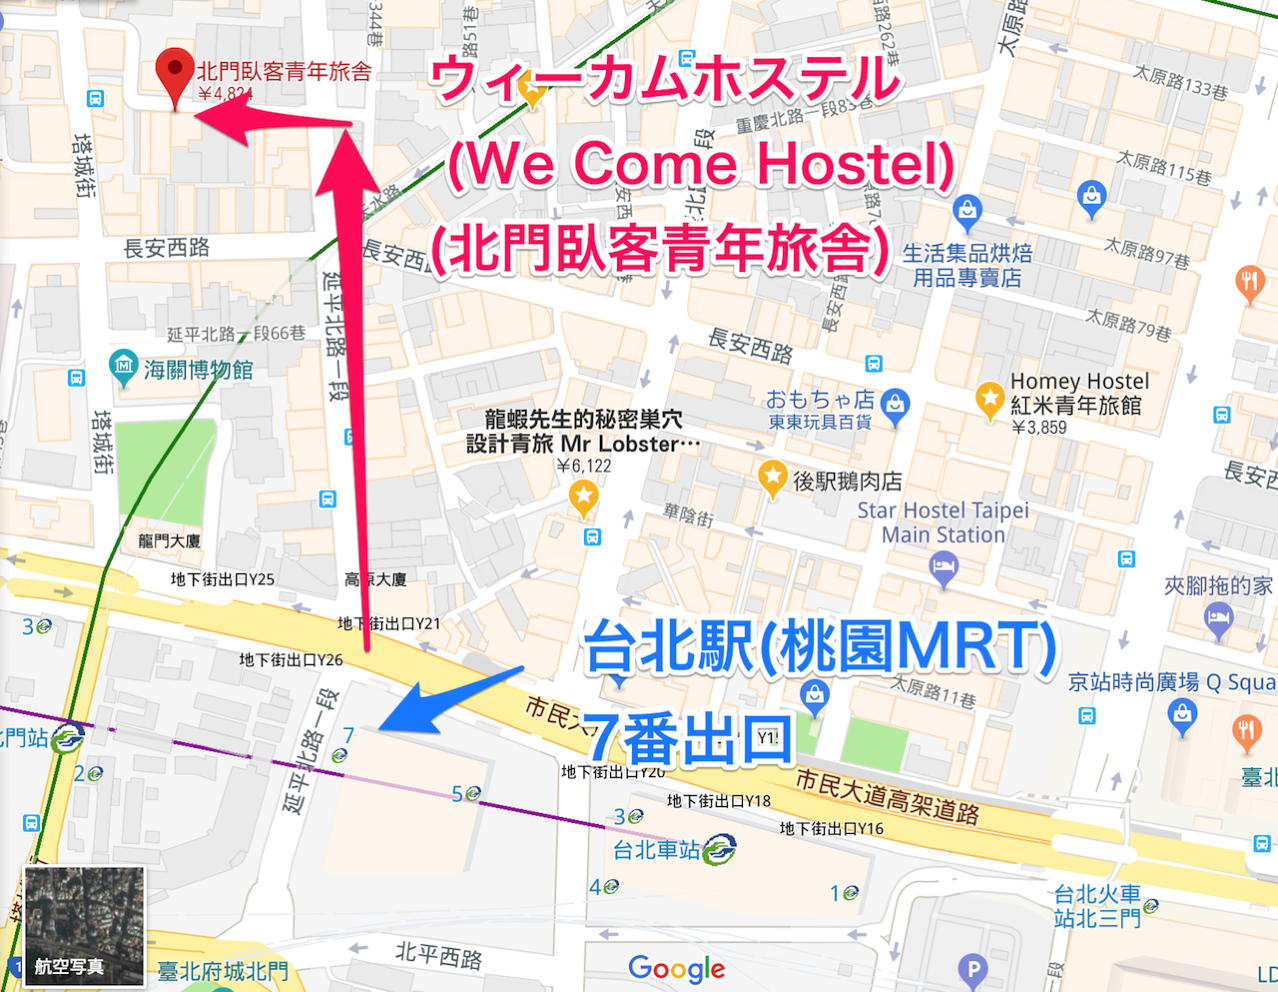 Wecomehostel map